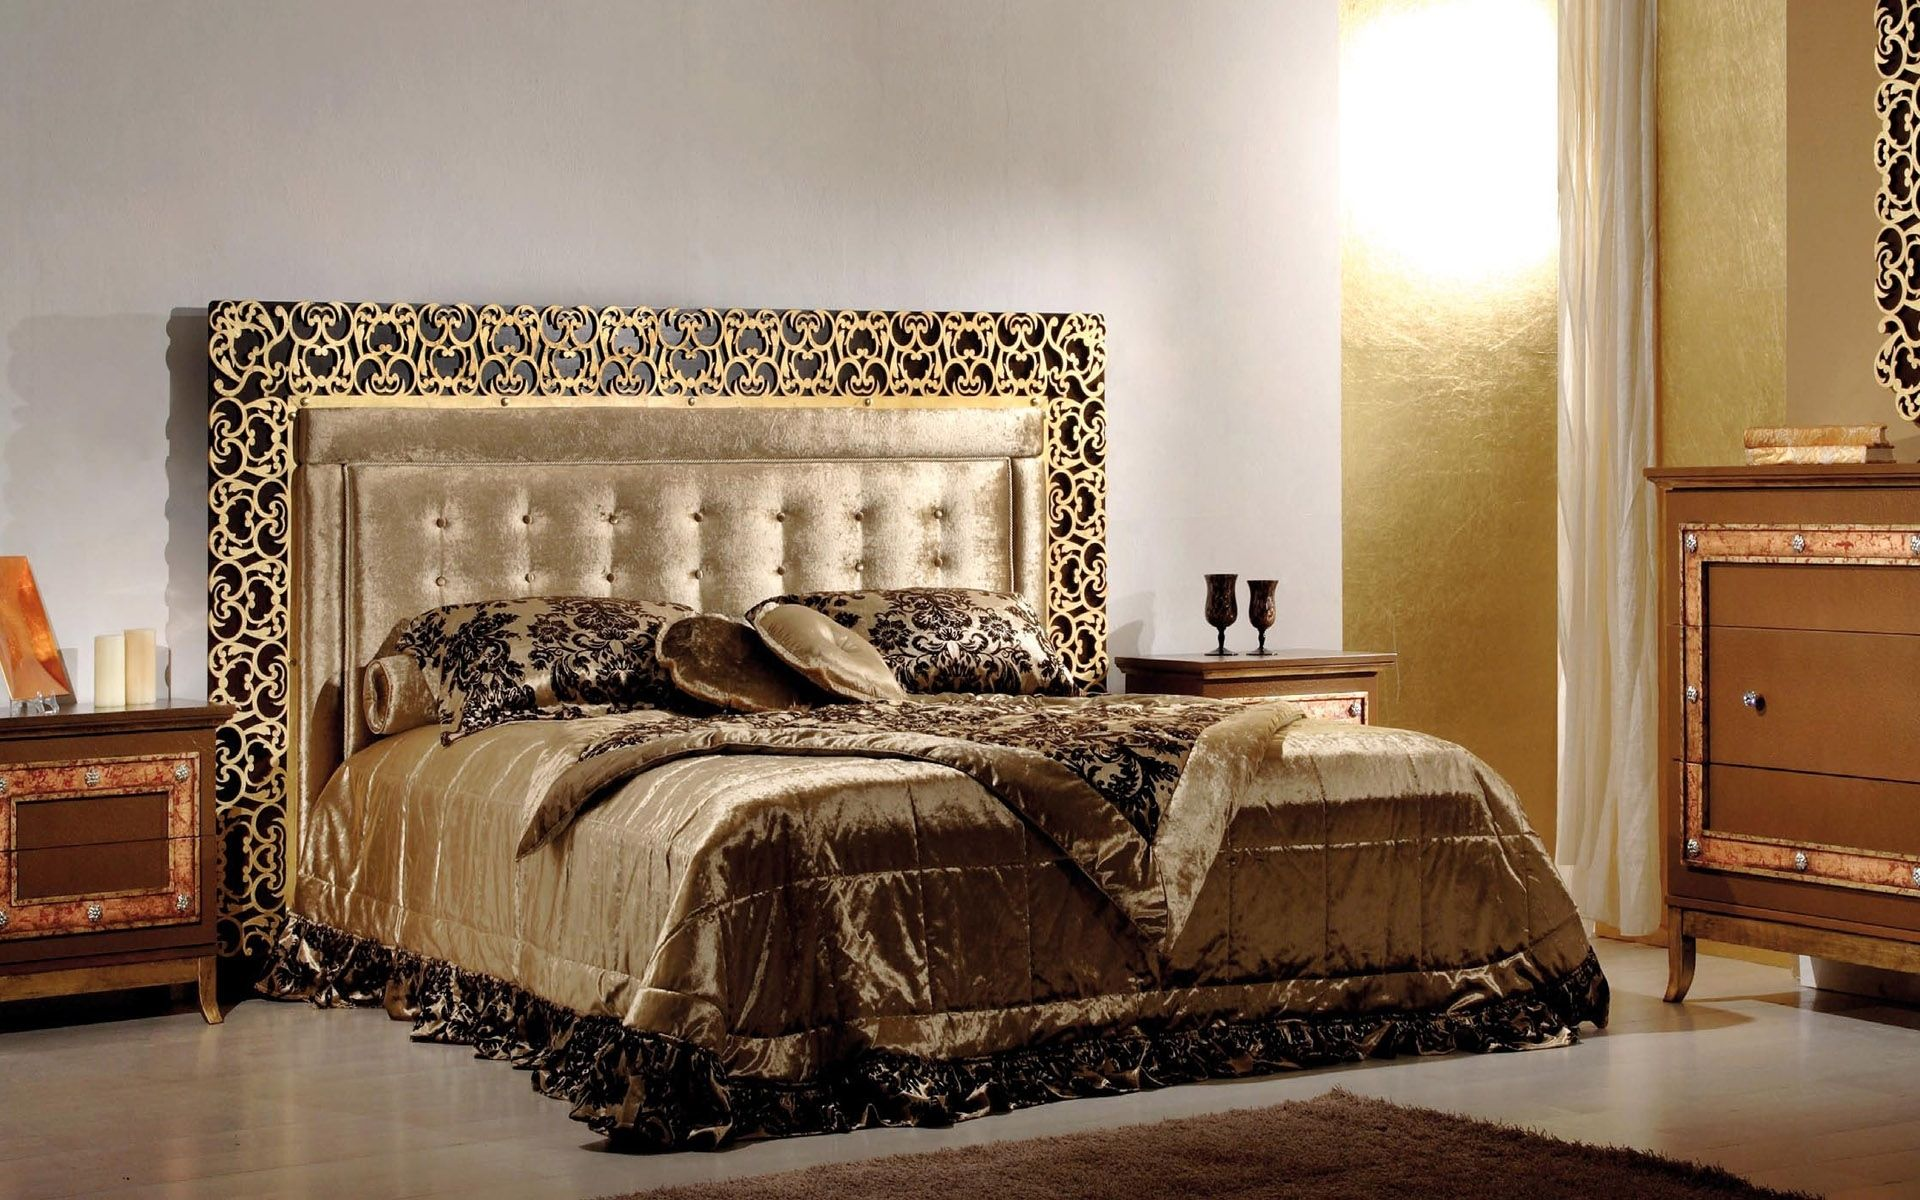 Luxury inspiration bed collection design modern gold black for Bedroom inspiration